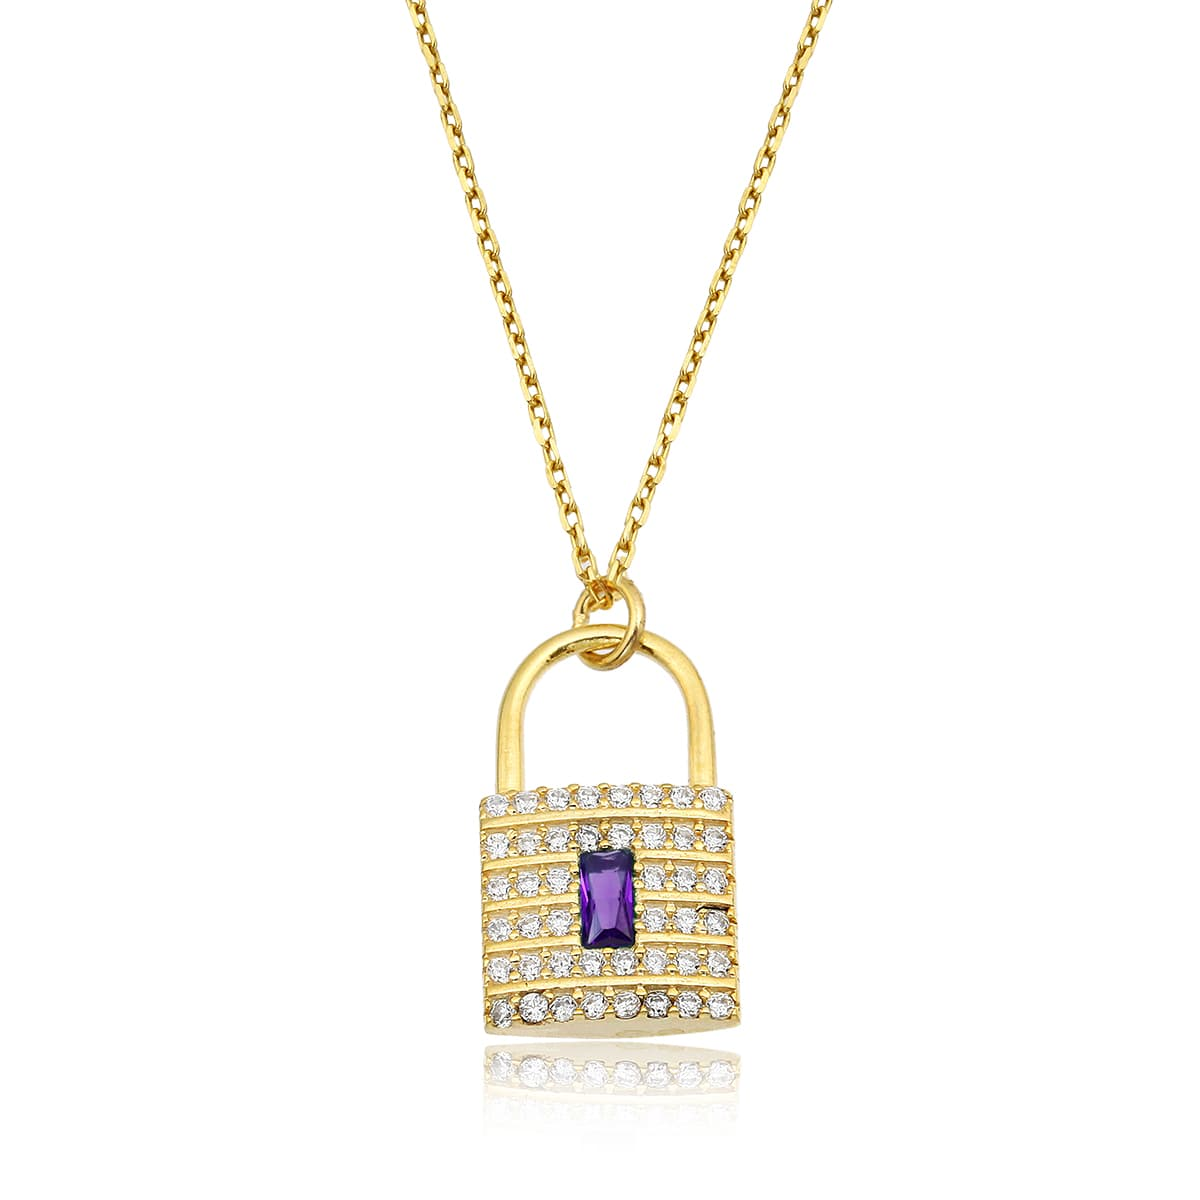 Gold plated silver necklace models